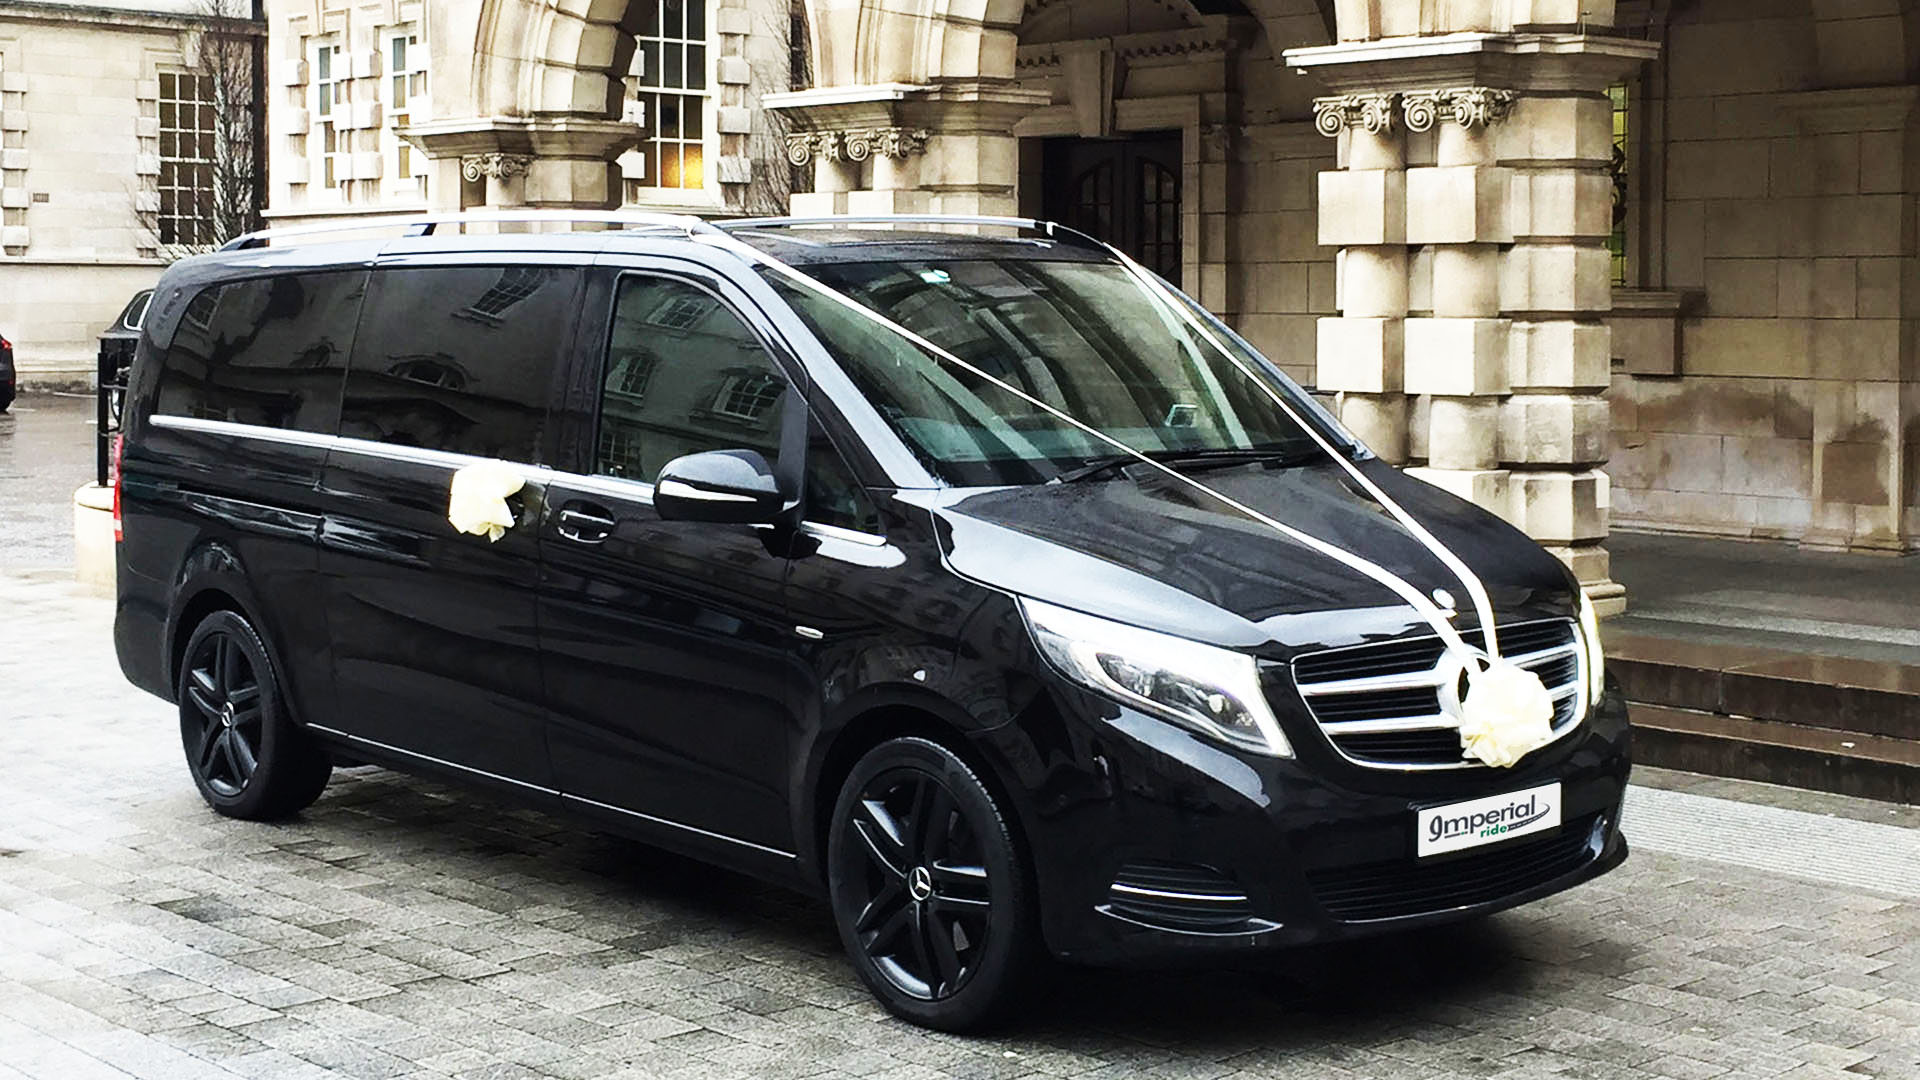 v-class-wedding-hire-in-kingston-upon-thames